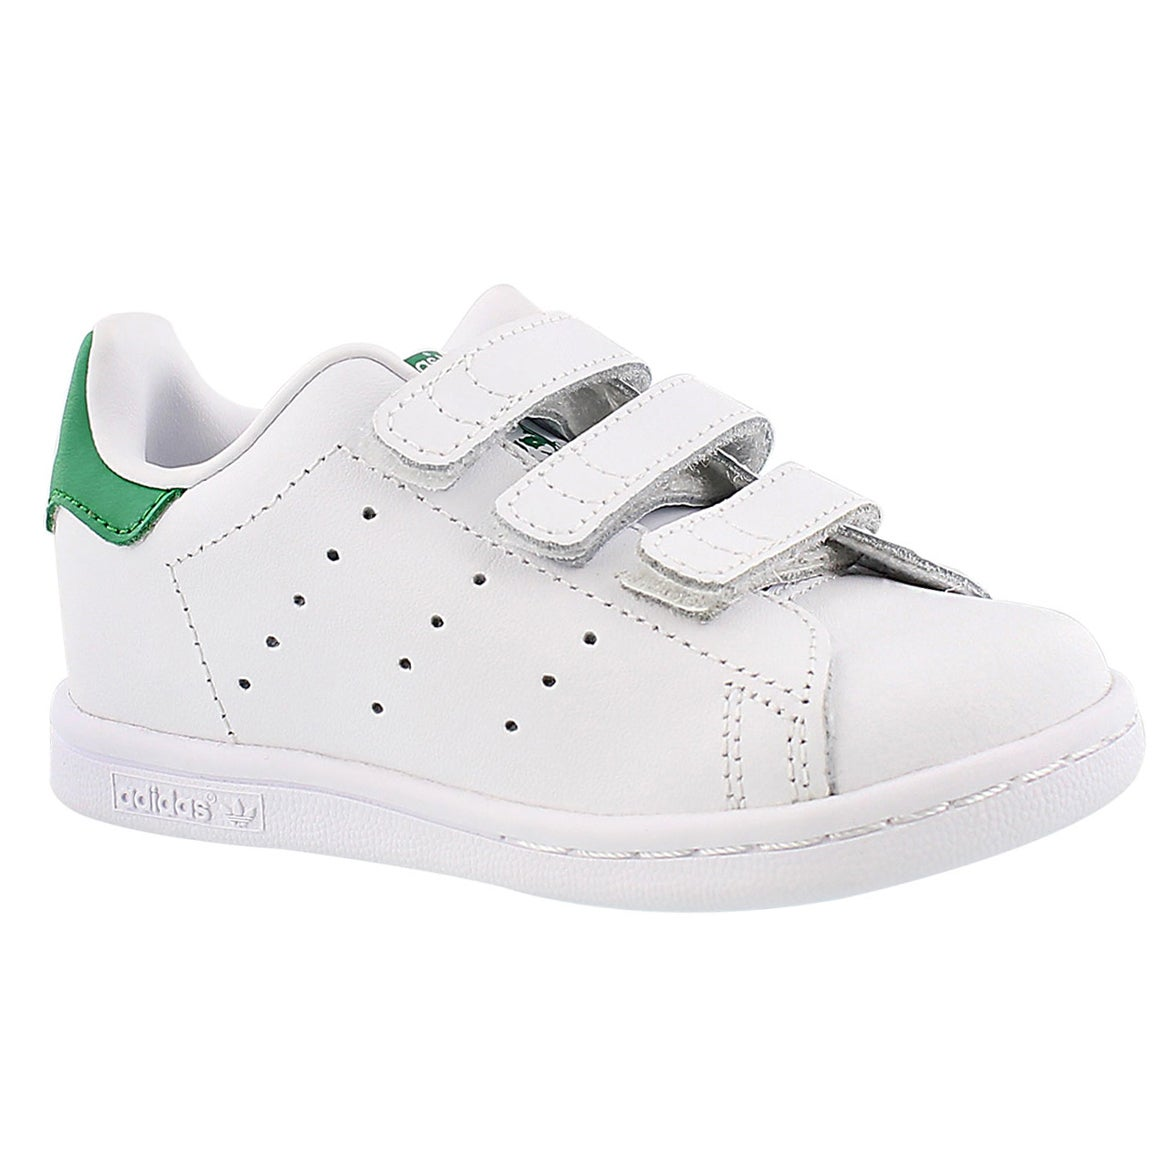 Infants' STAN SMITH white/green sneakers